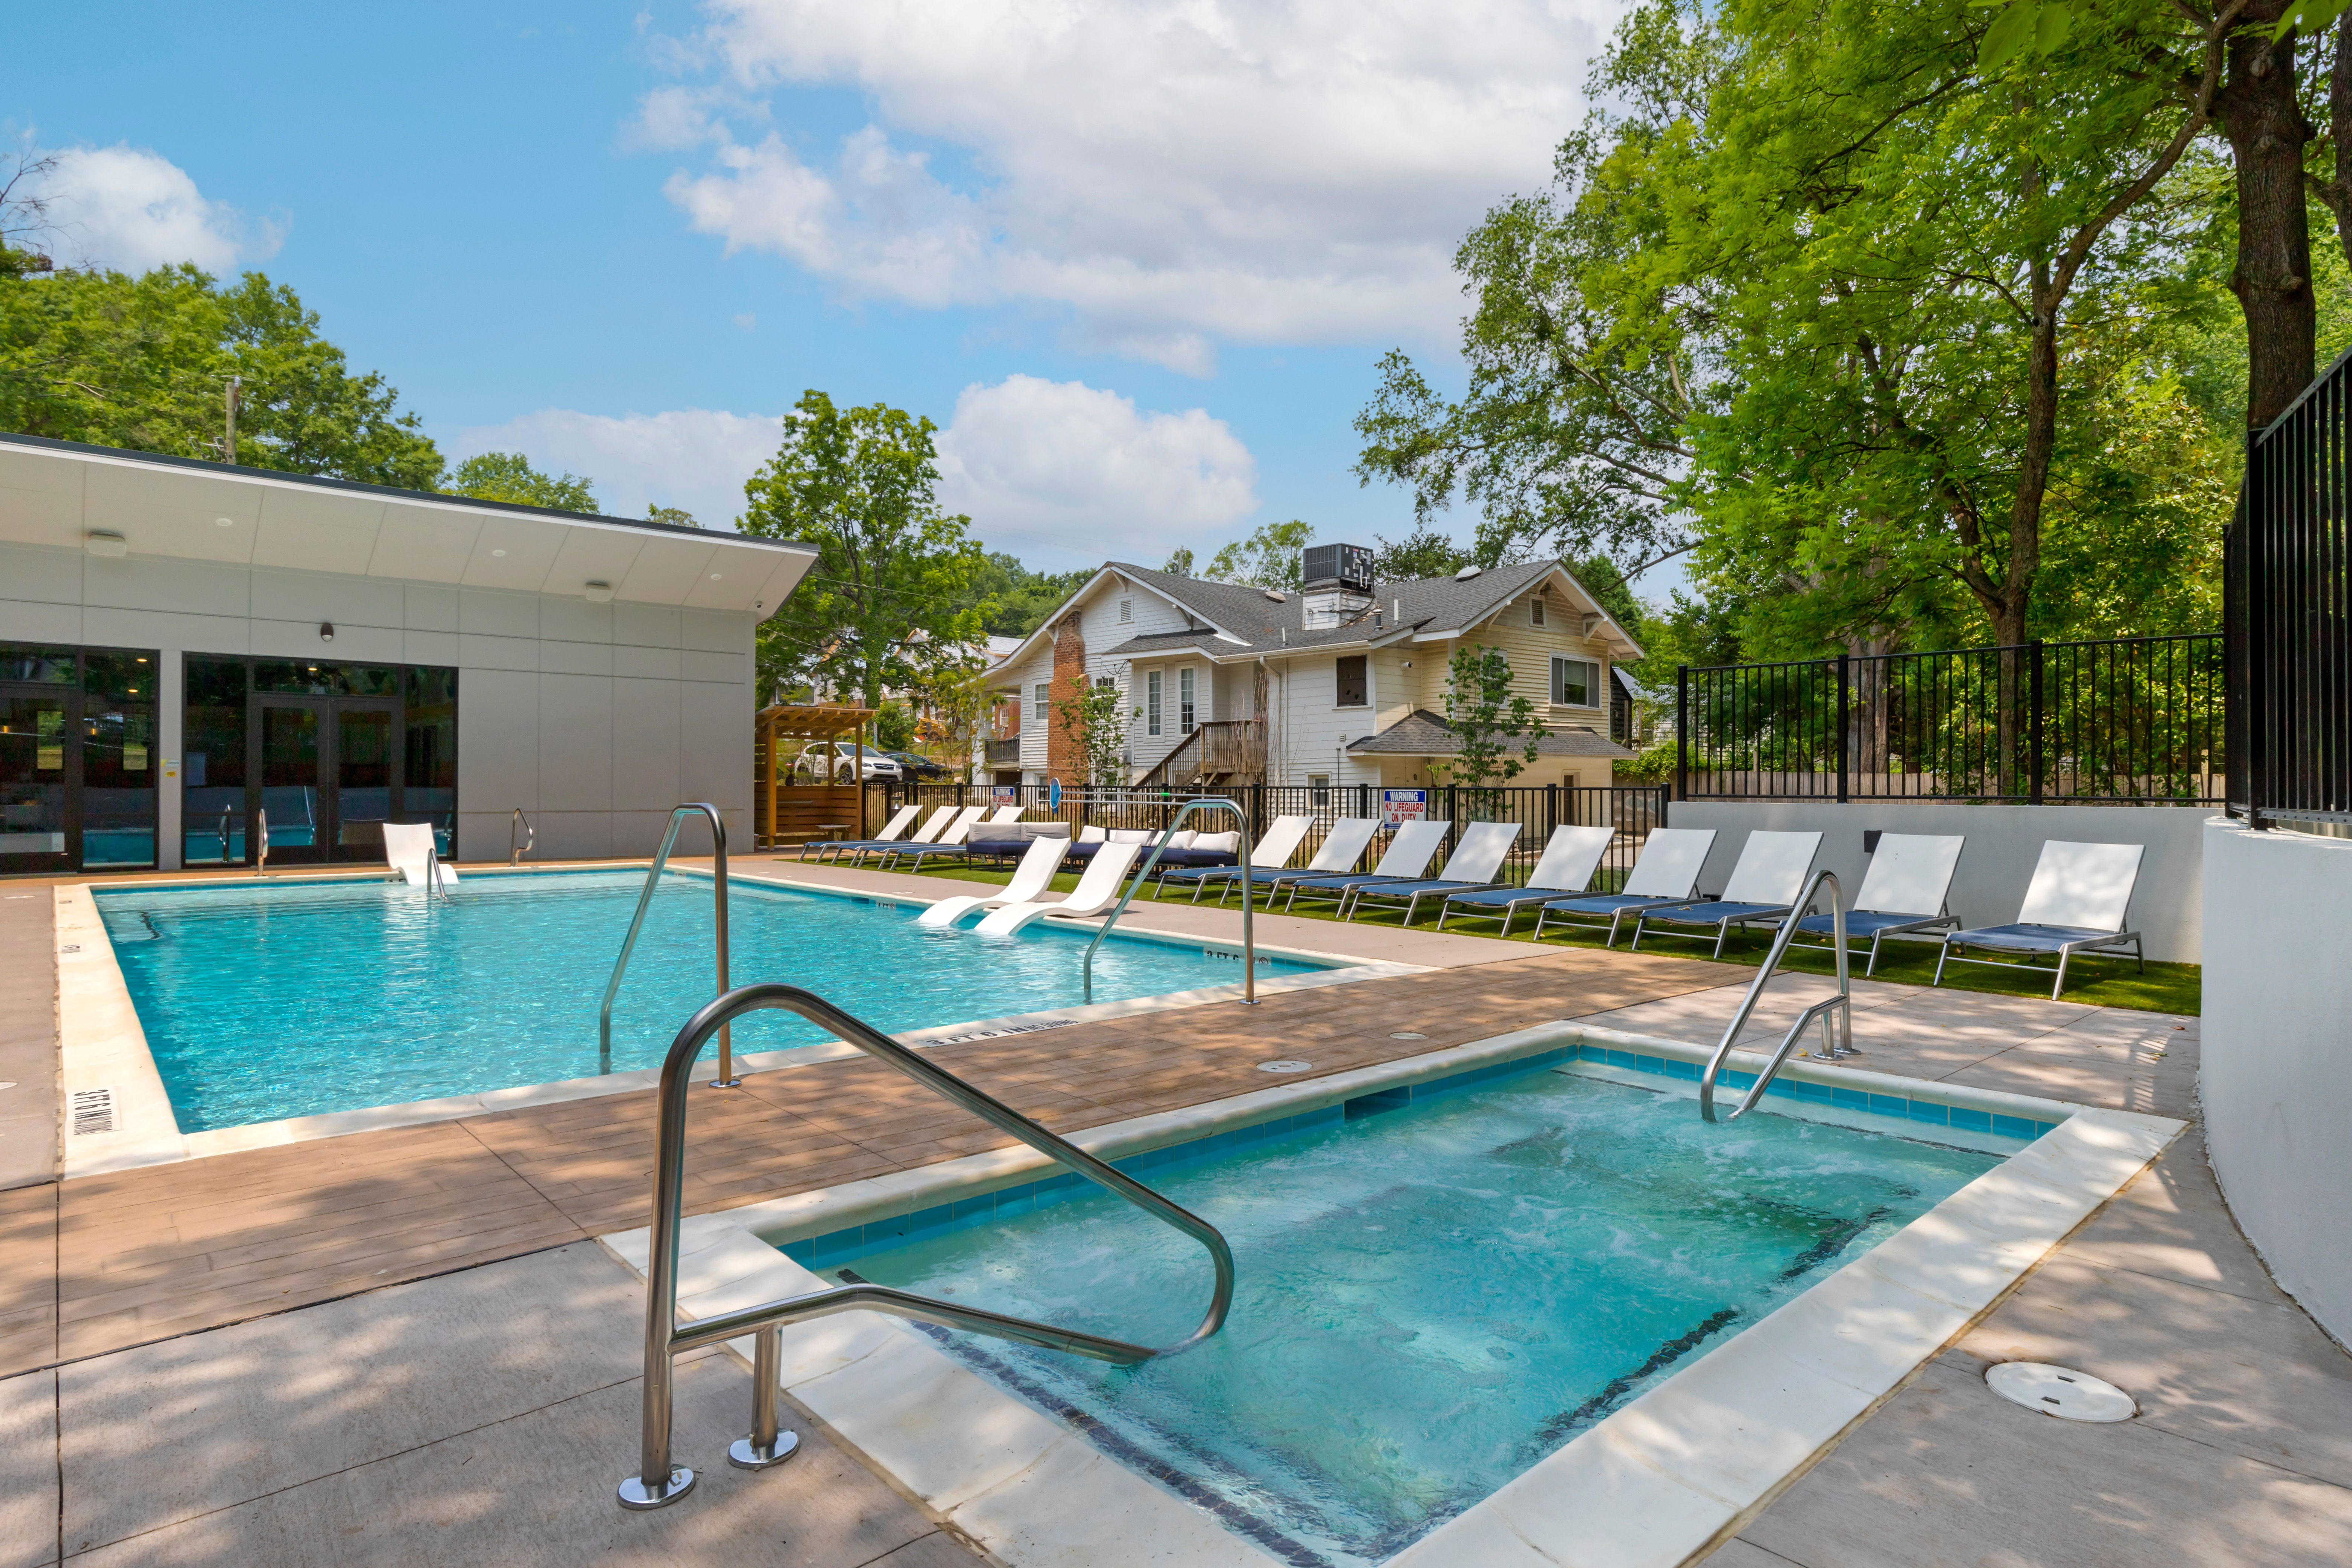 Jacuzzi at UNCOMMON Raleigh in Raleigh, North Carolina